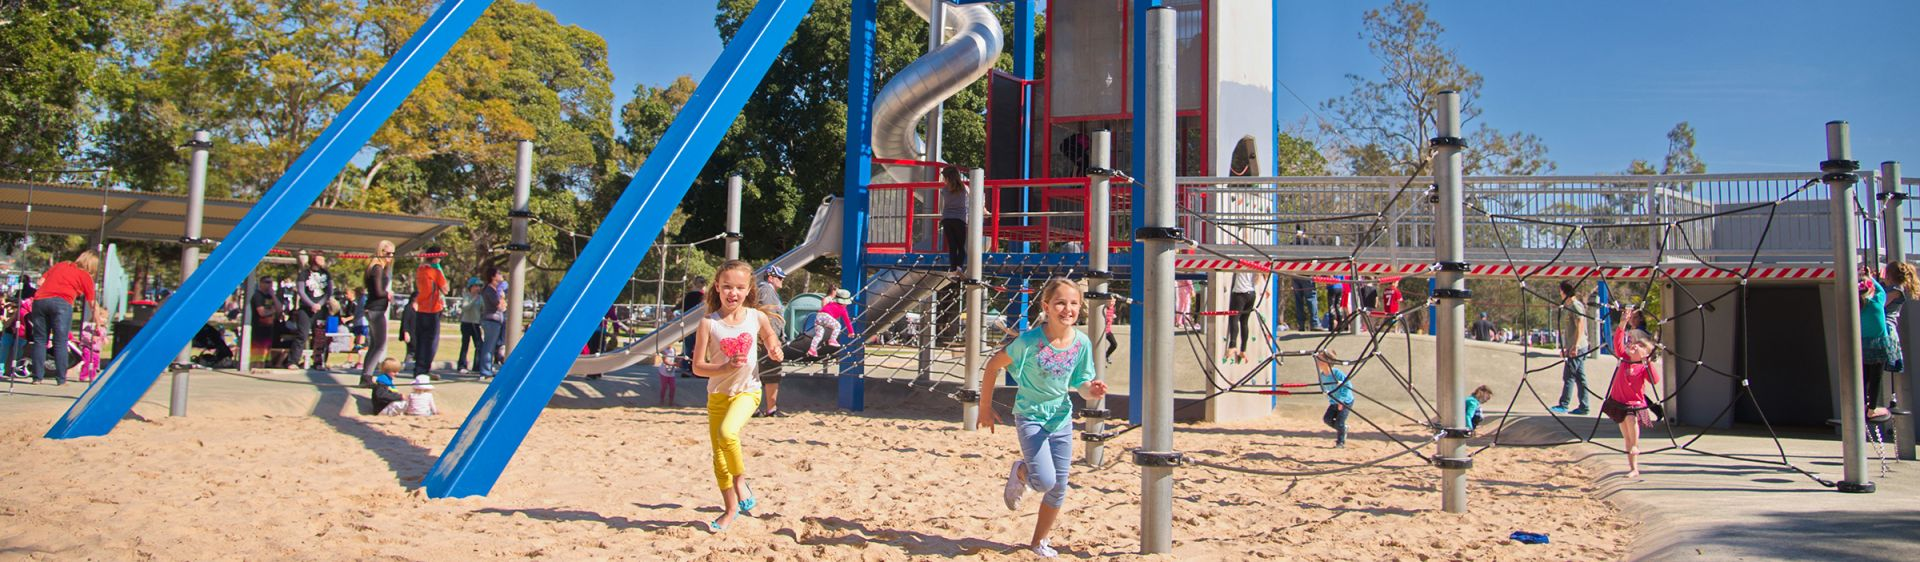 Kids having fun at Lake Macquarie Variety Playground